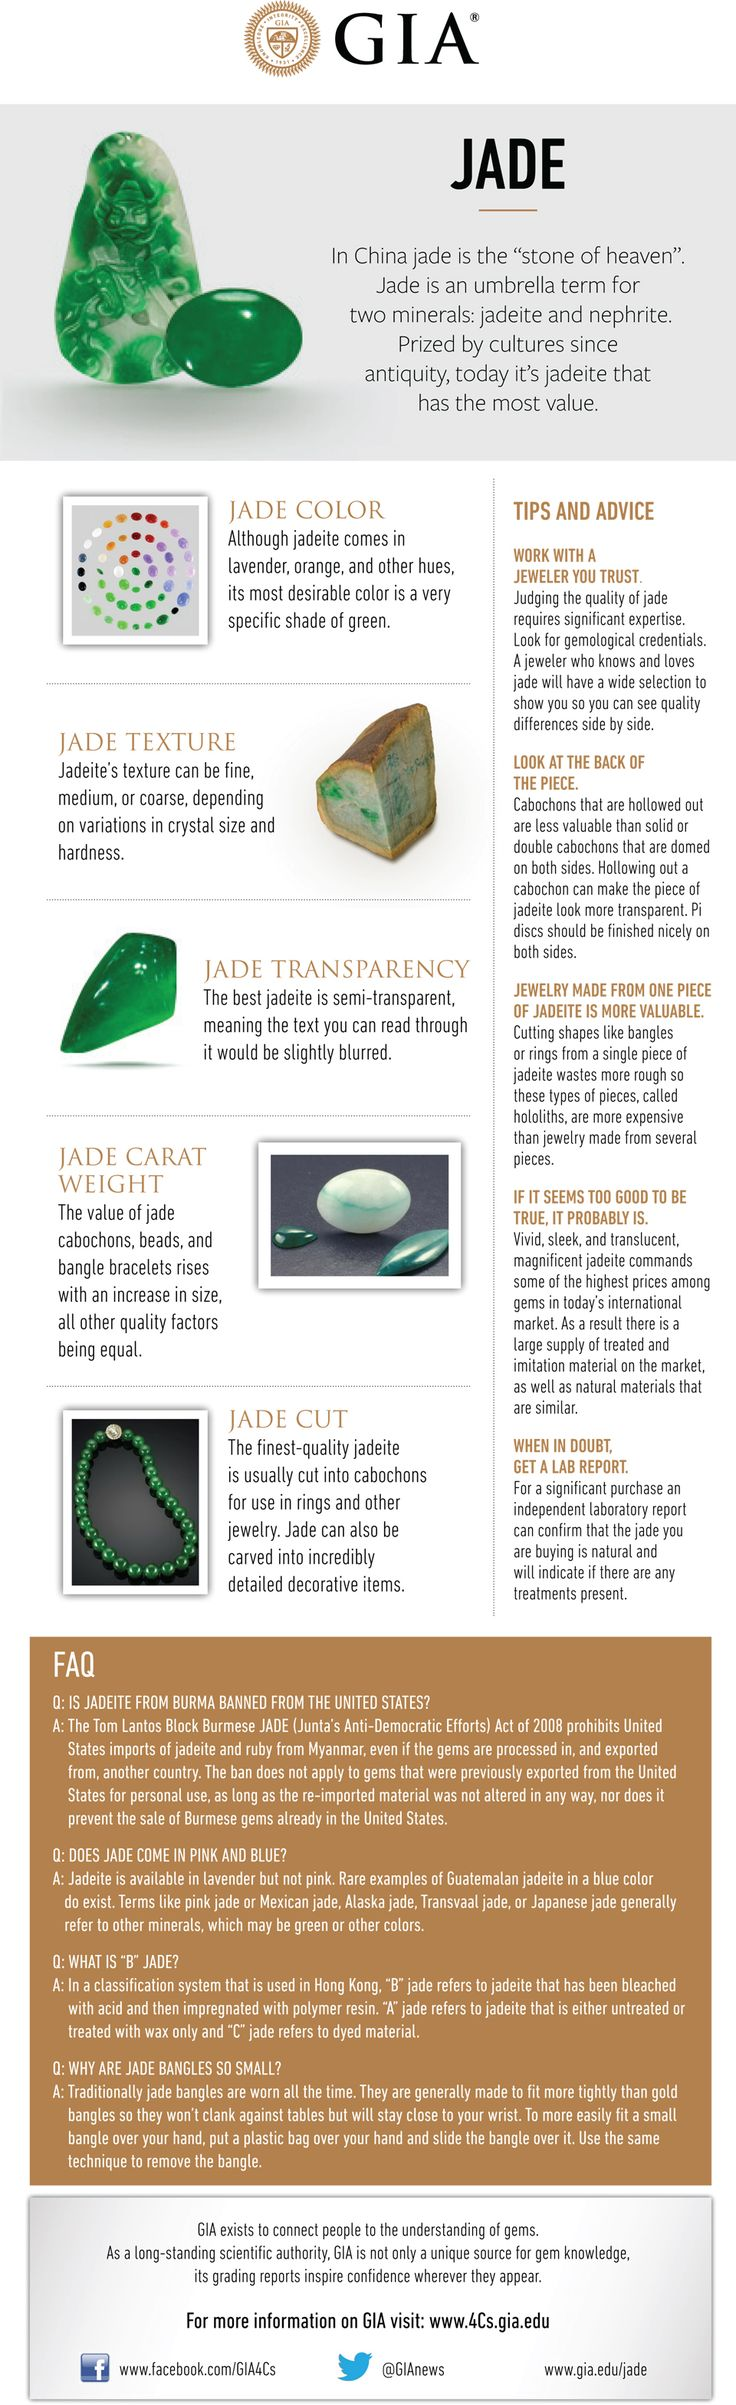 Jade Buying Guide. GIA (111214)